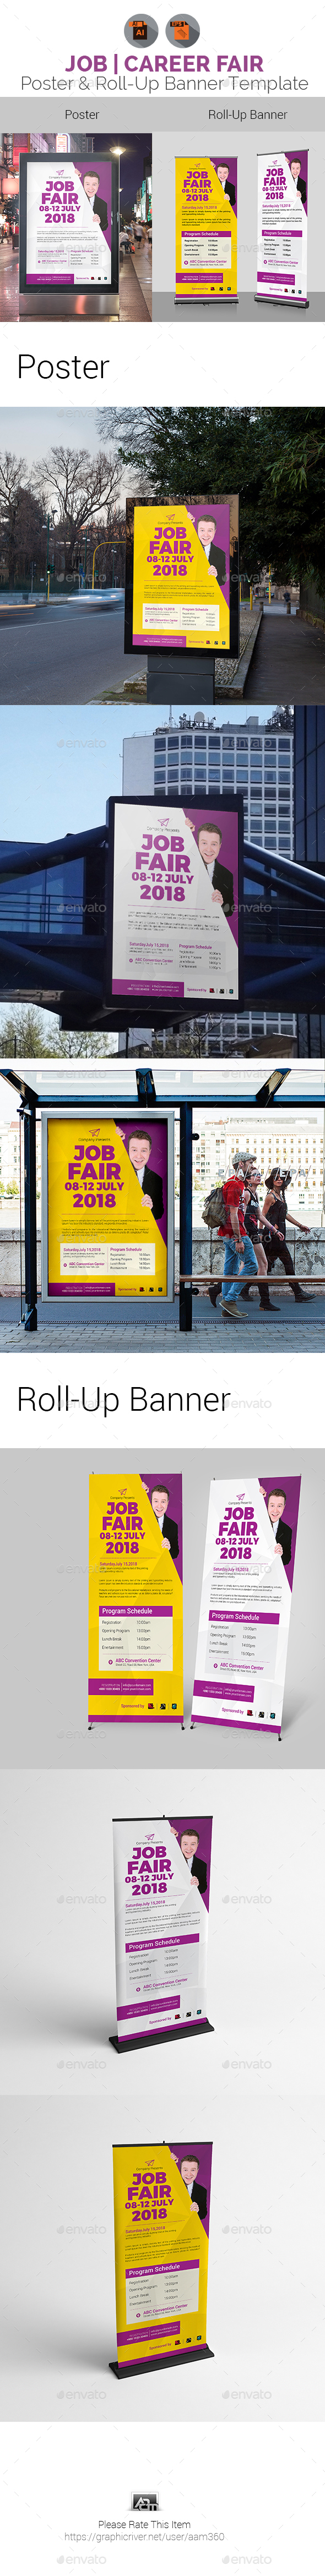 Job Fair Poster & Roll-Up Banner Template - Signage Print Templates